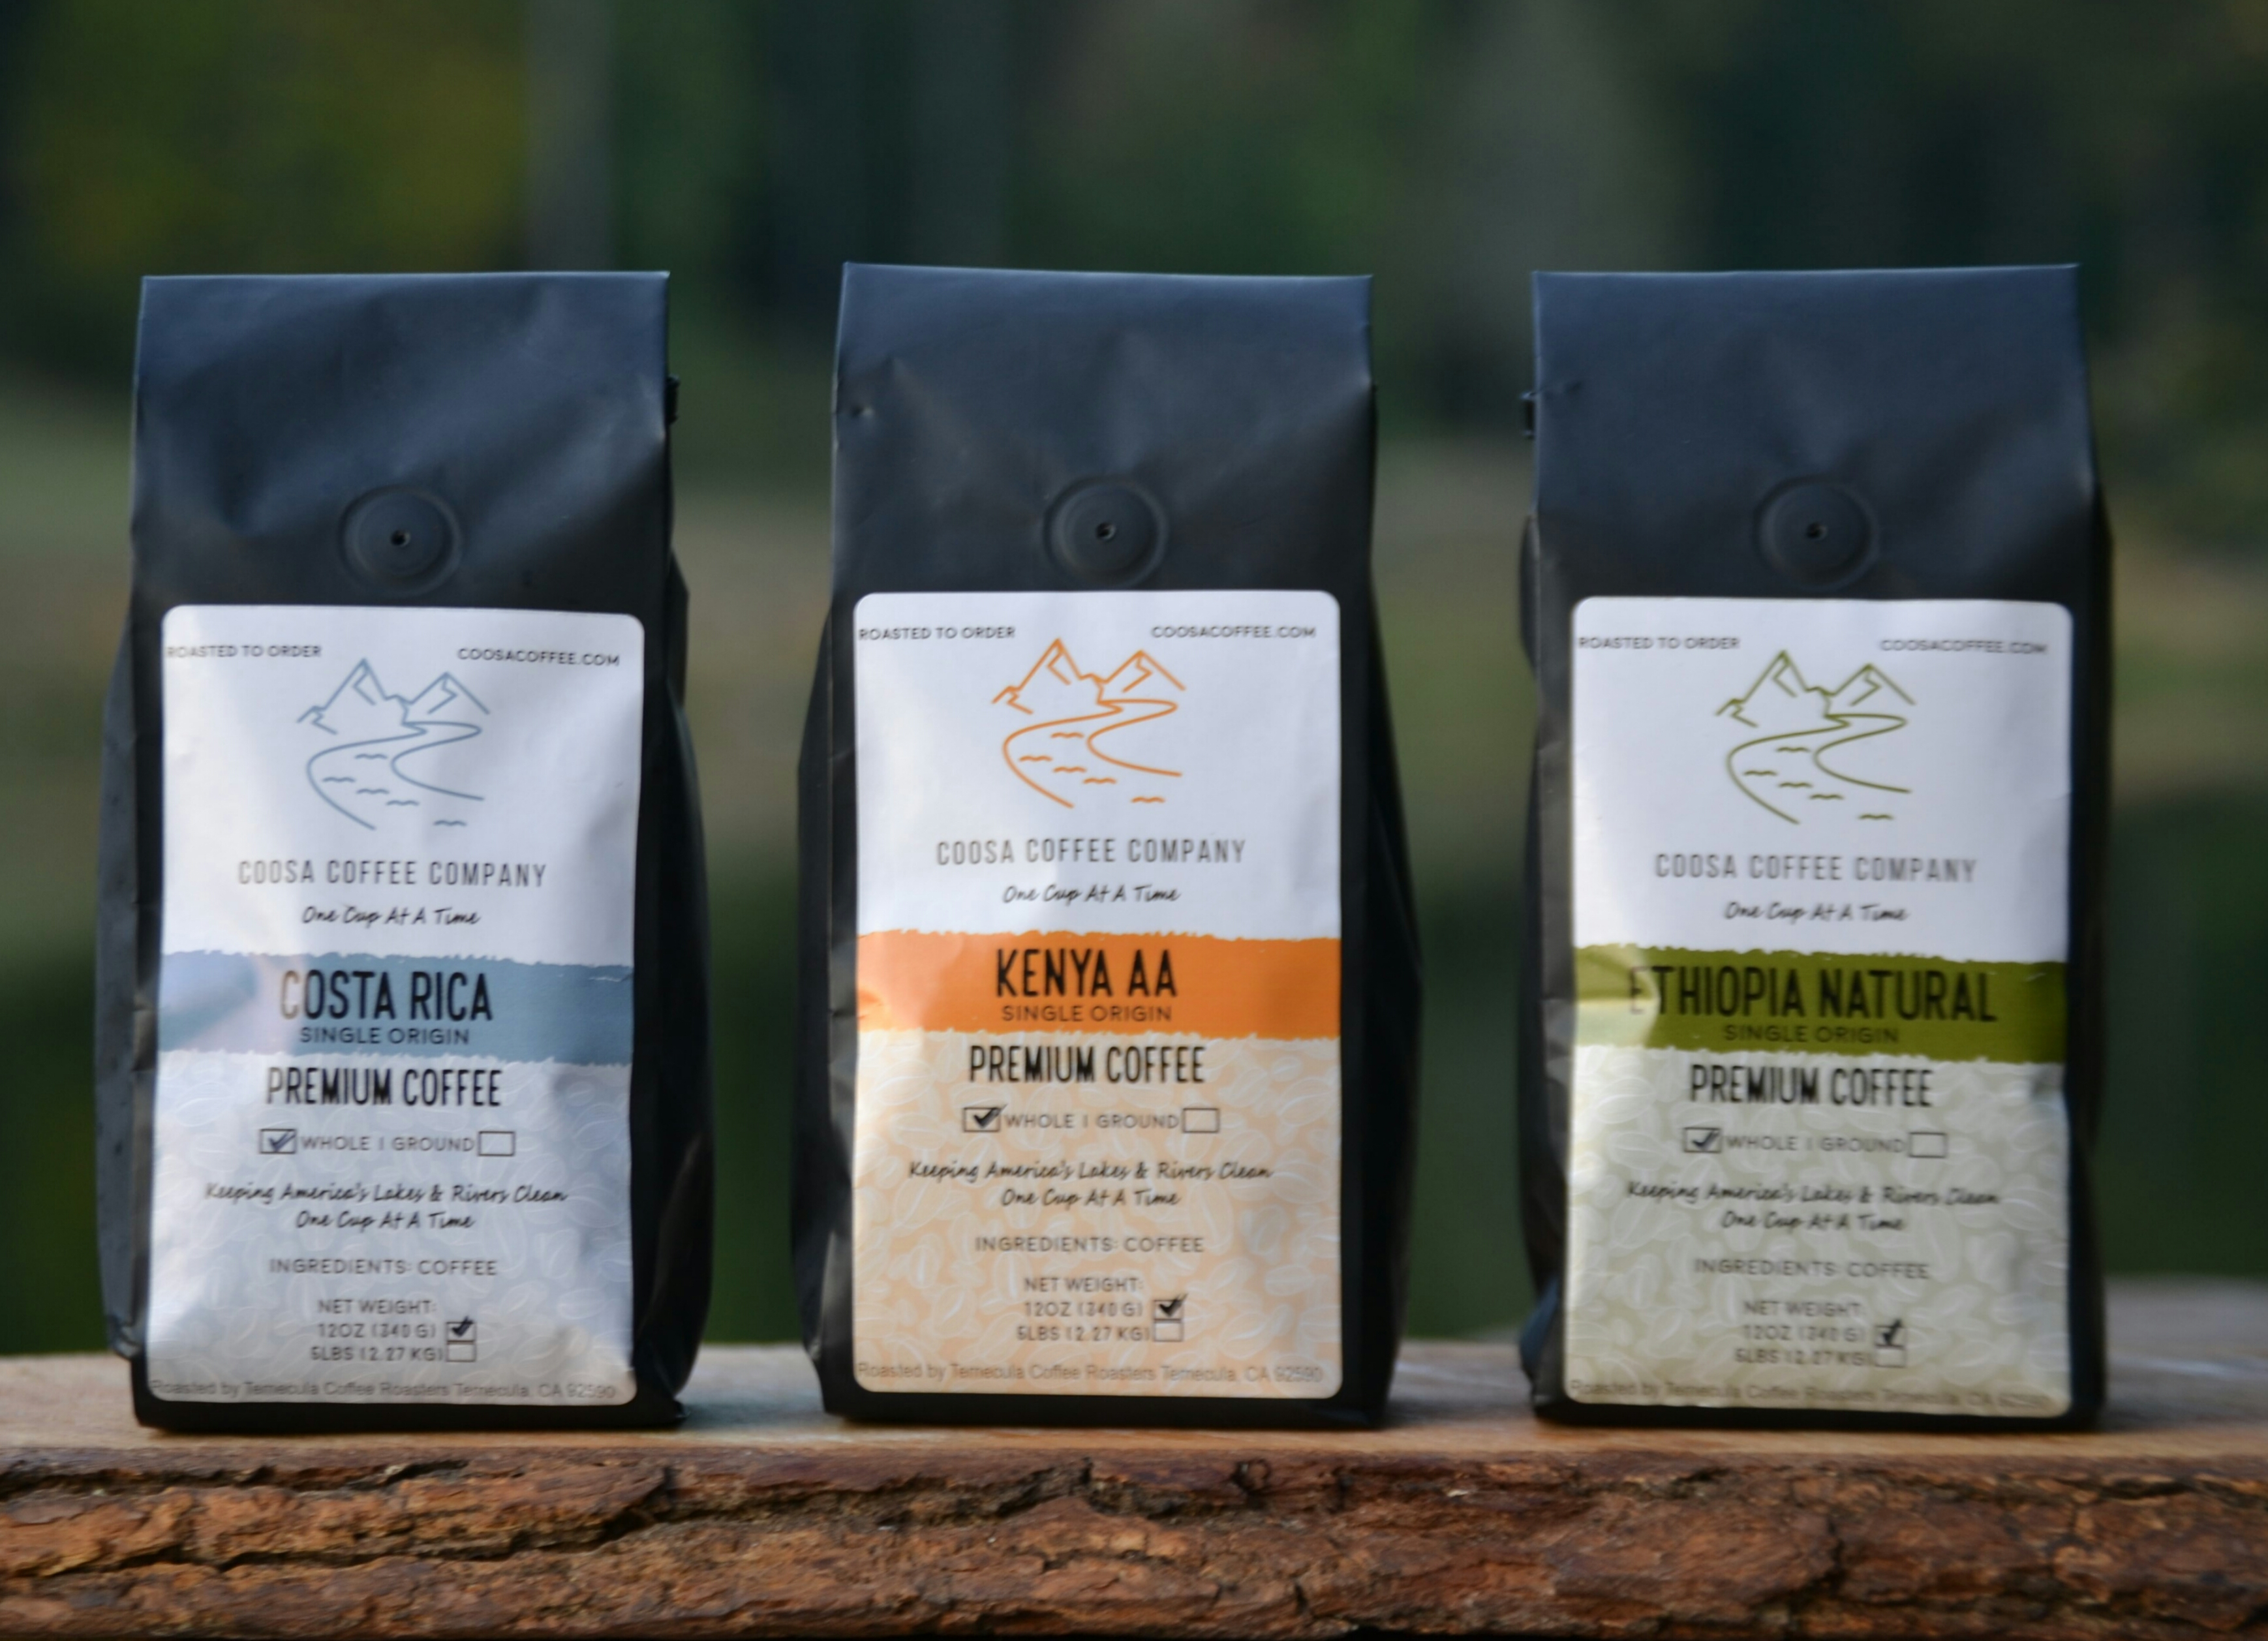 Coosa Coffee Company, based out of Trussville, offering e-commerce coffee